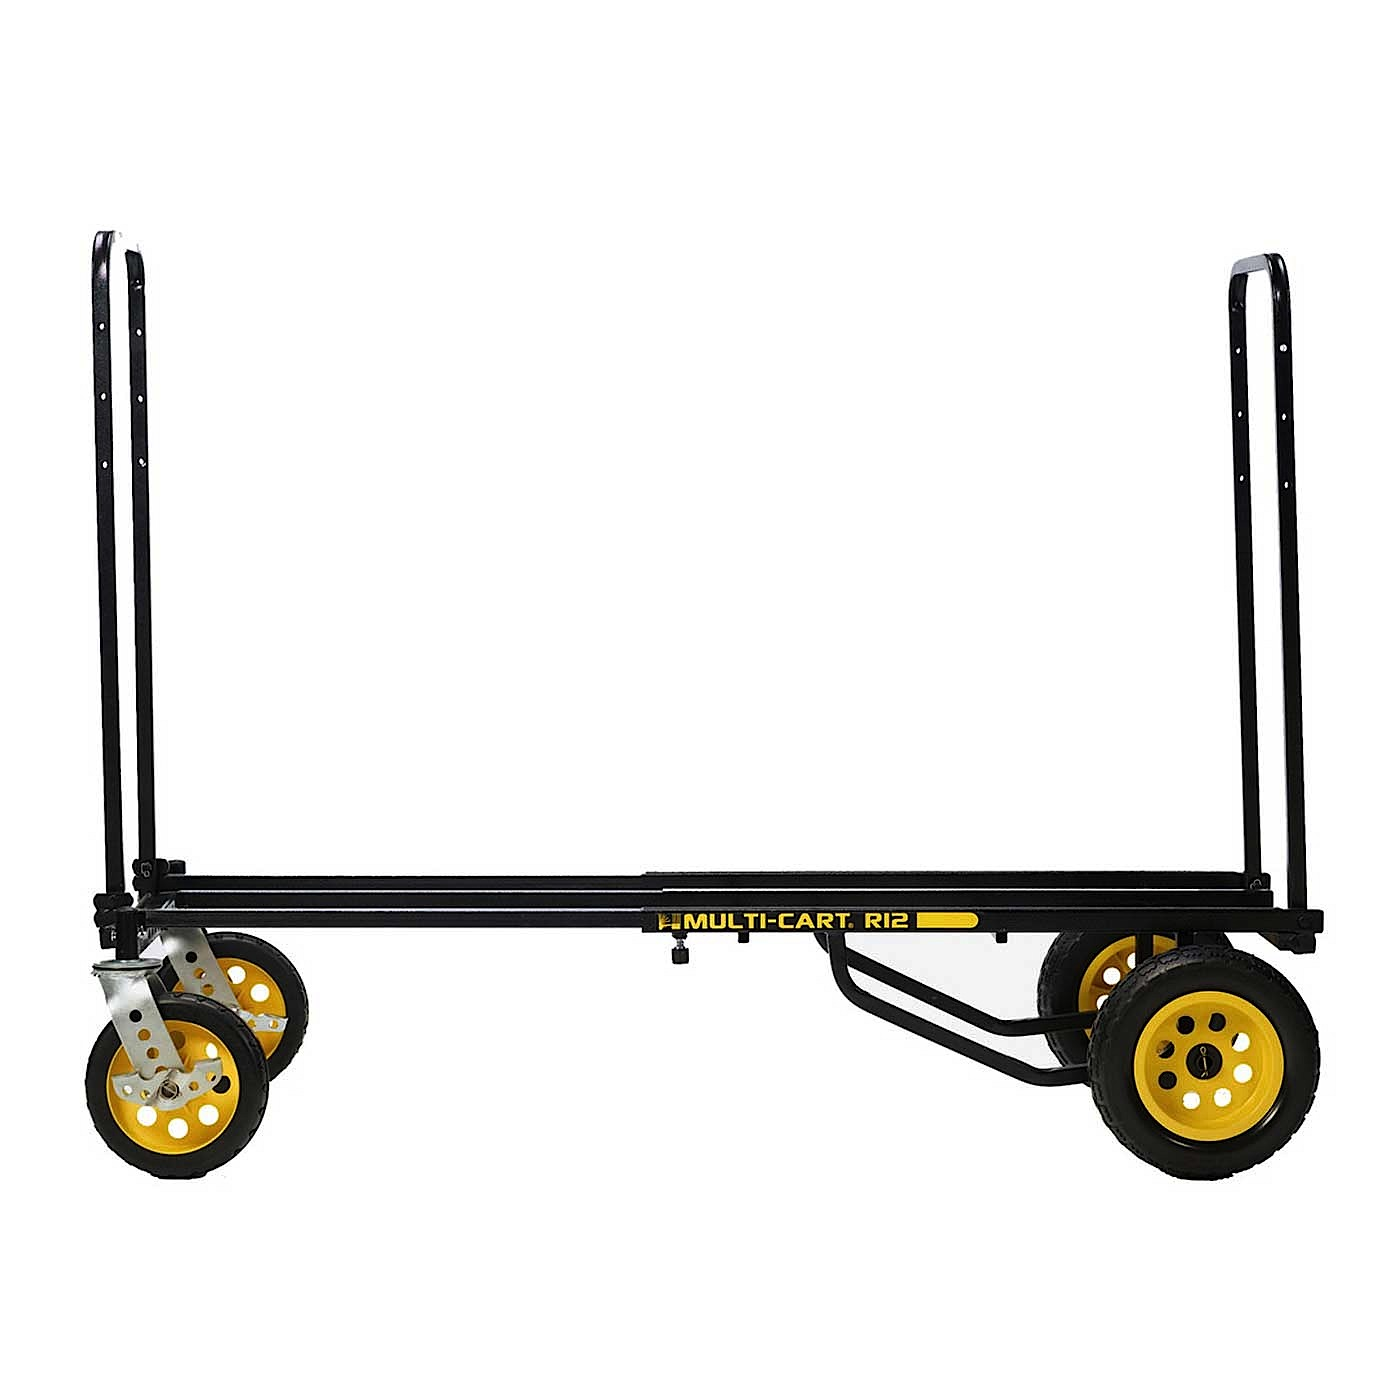 Rock N Roller Multi Cart R12